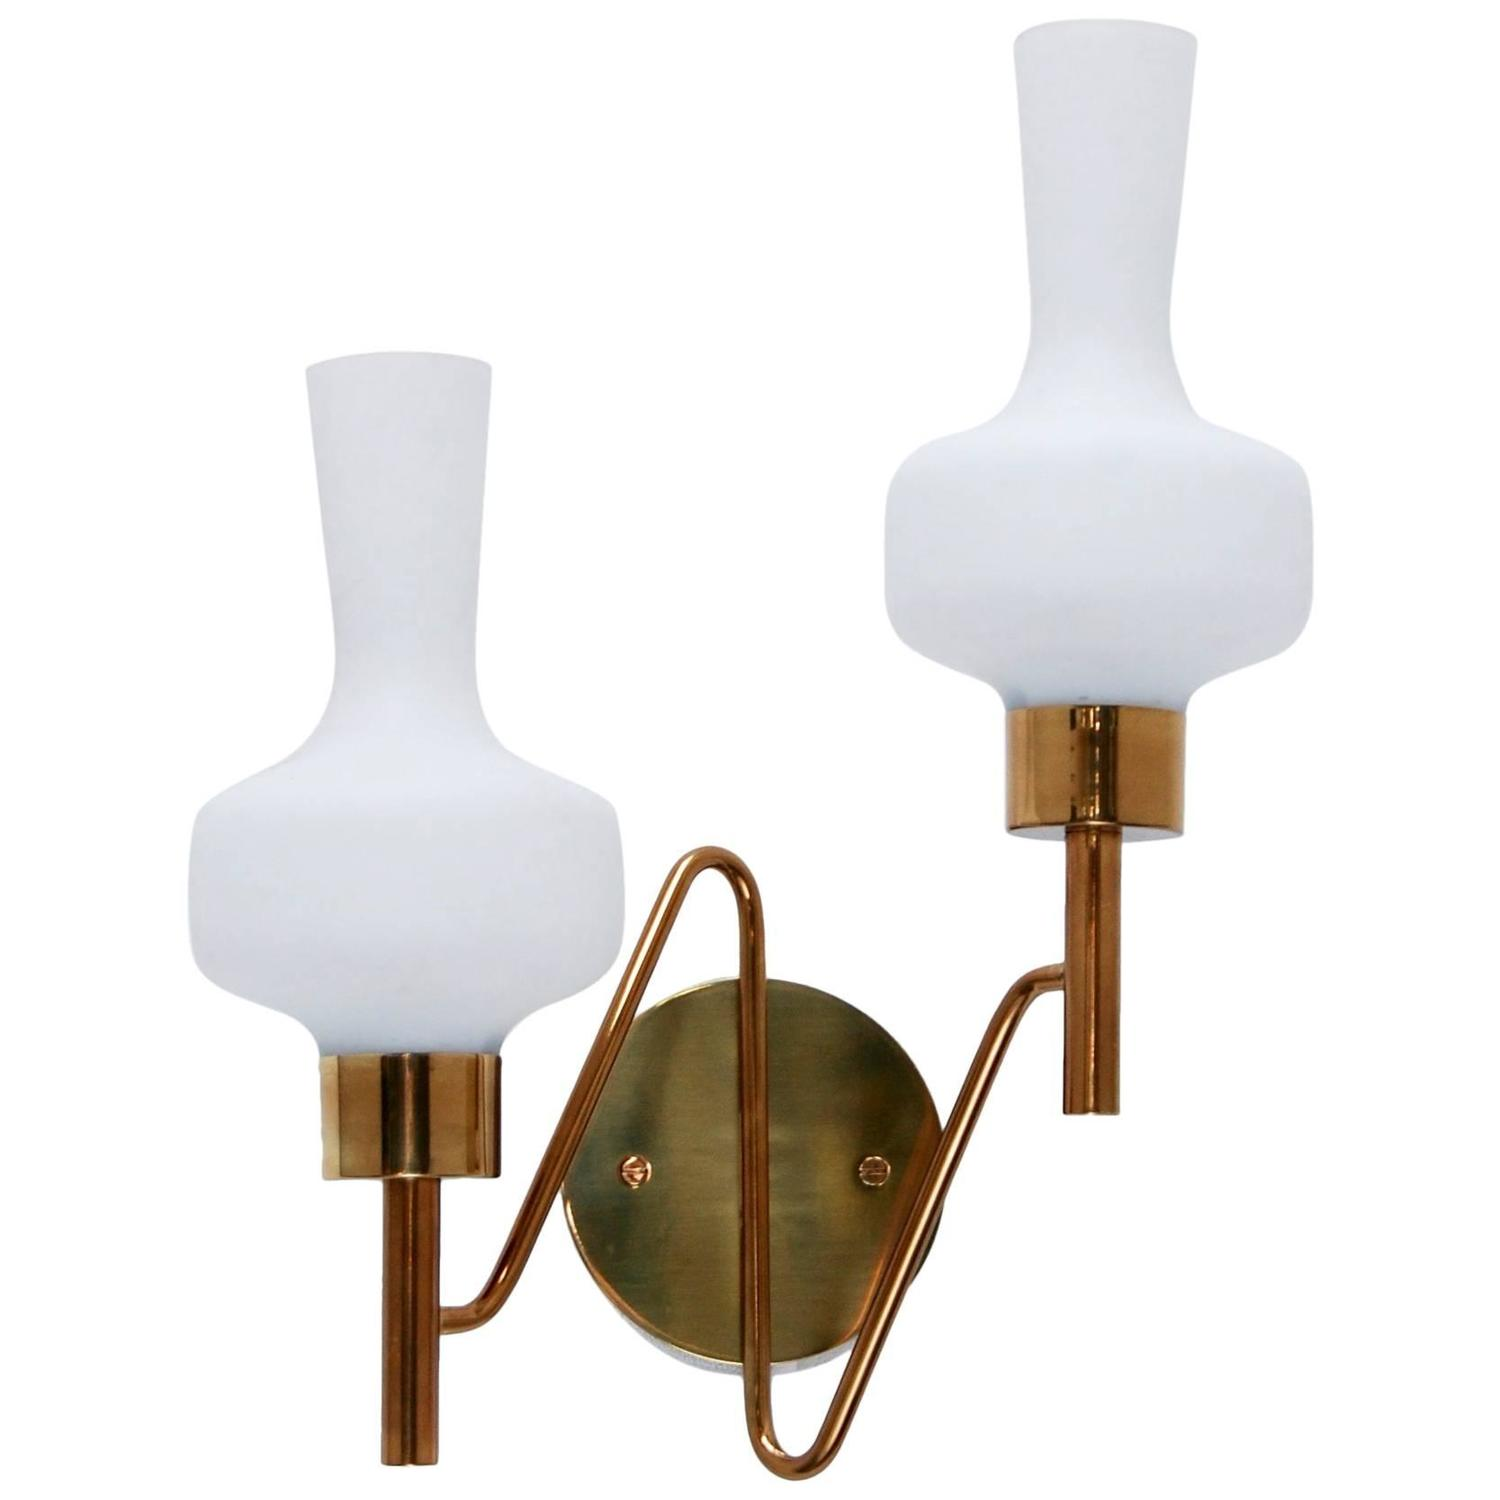 Double Shade Wall Sconces : Classic Italian Double Shade Sconce For Sale at 1stdibs